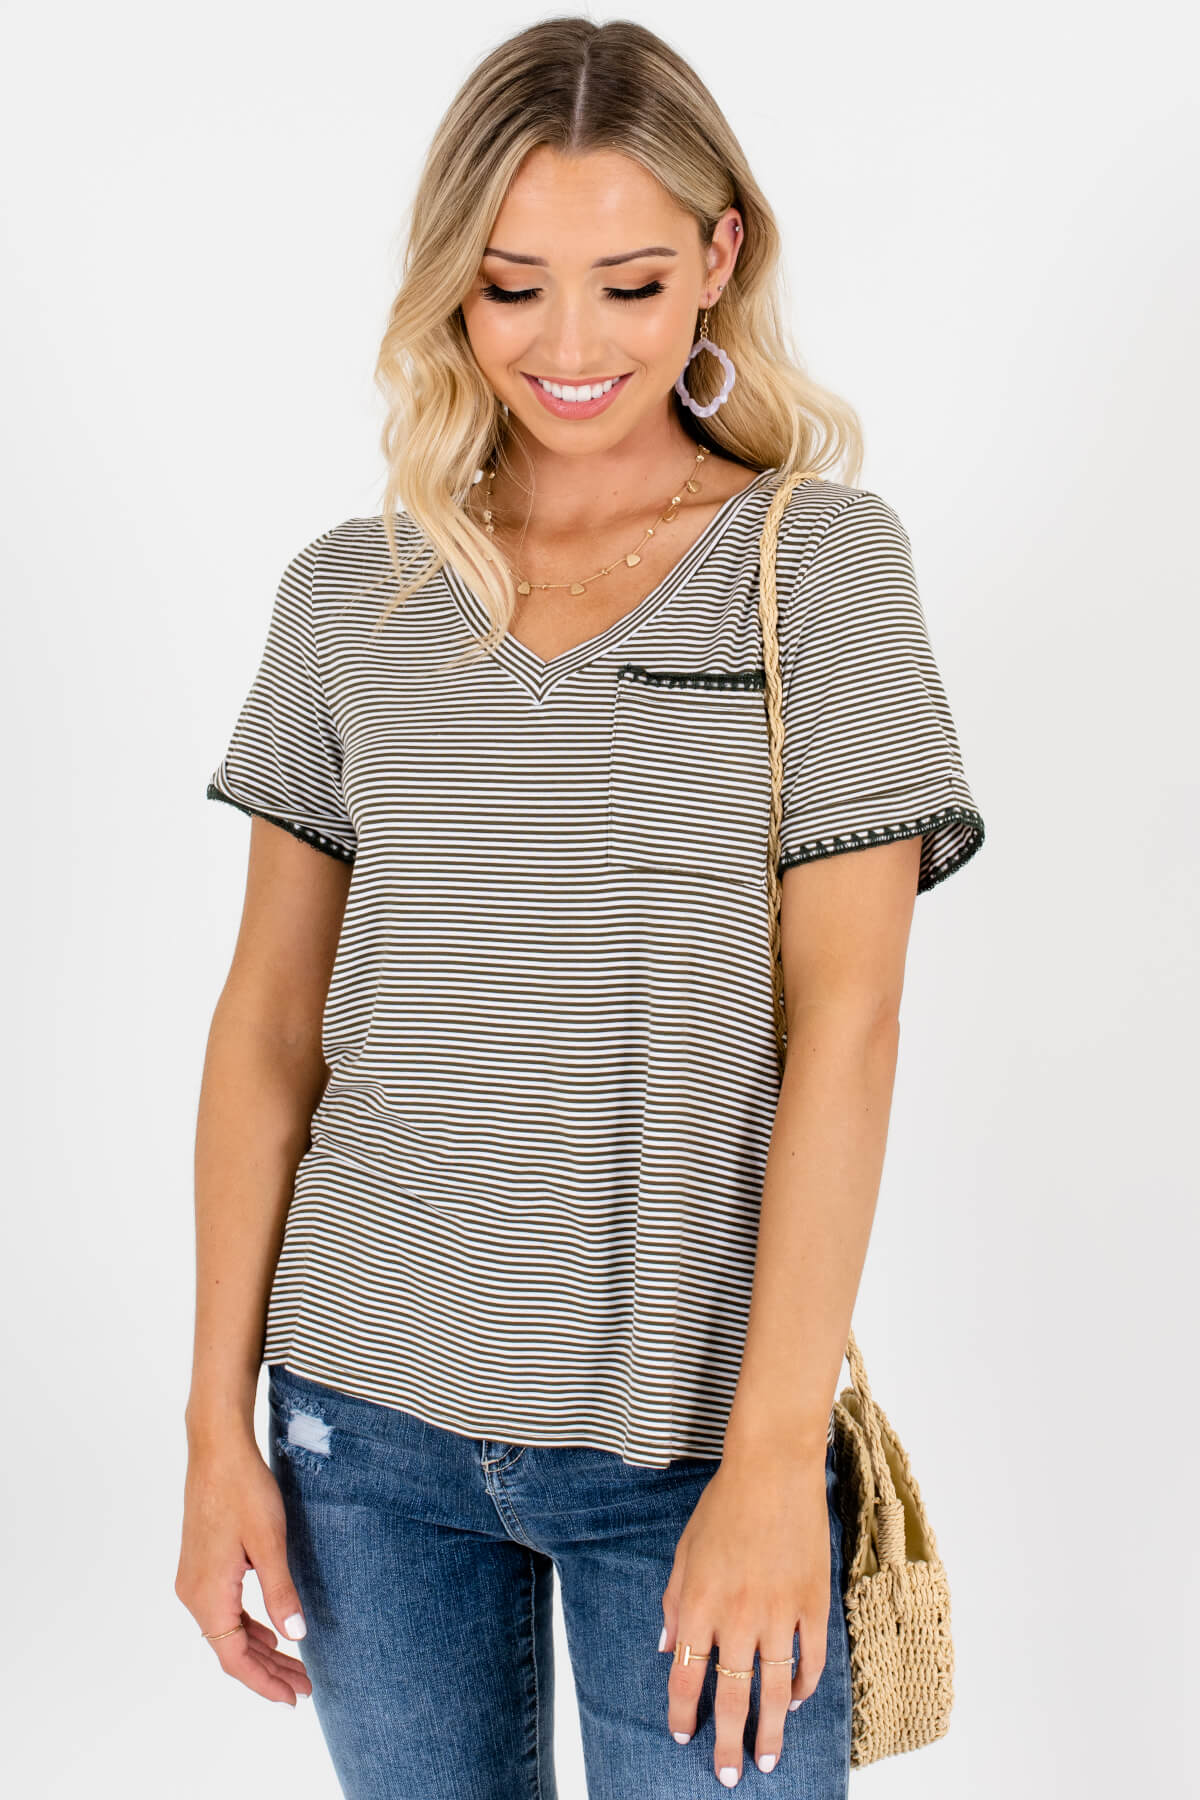 Olive Green White Striped T-Shirt Affordable Online Boutique